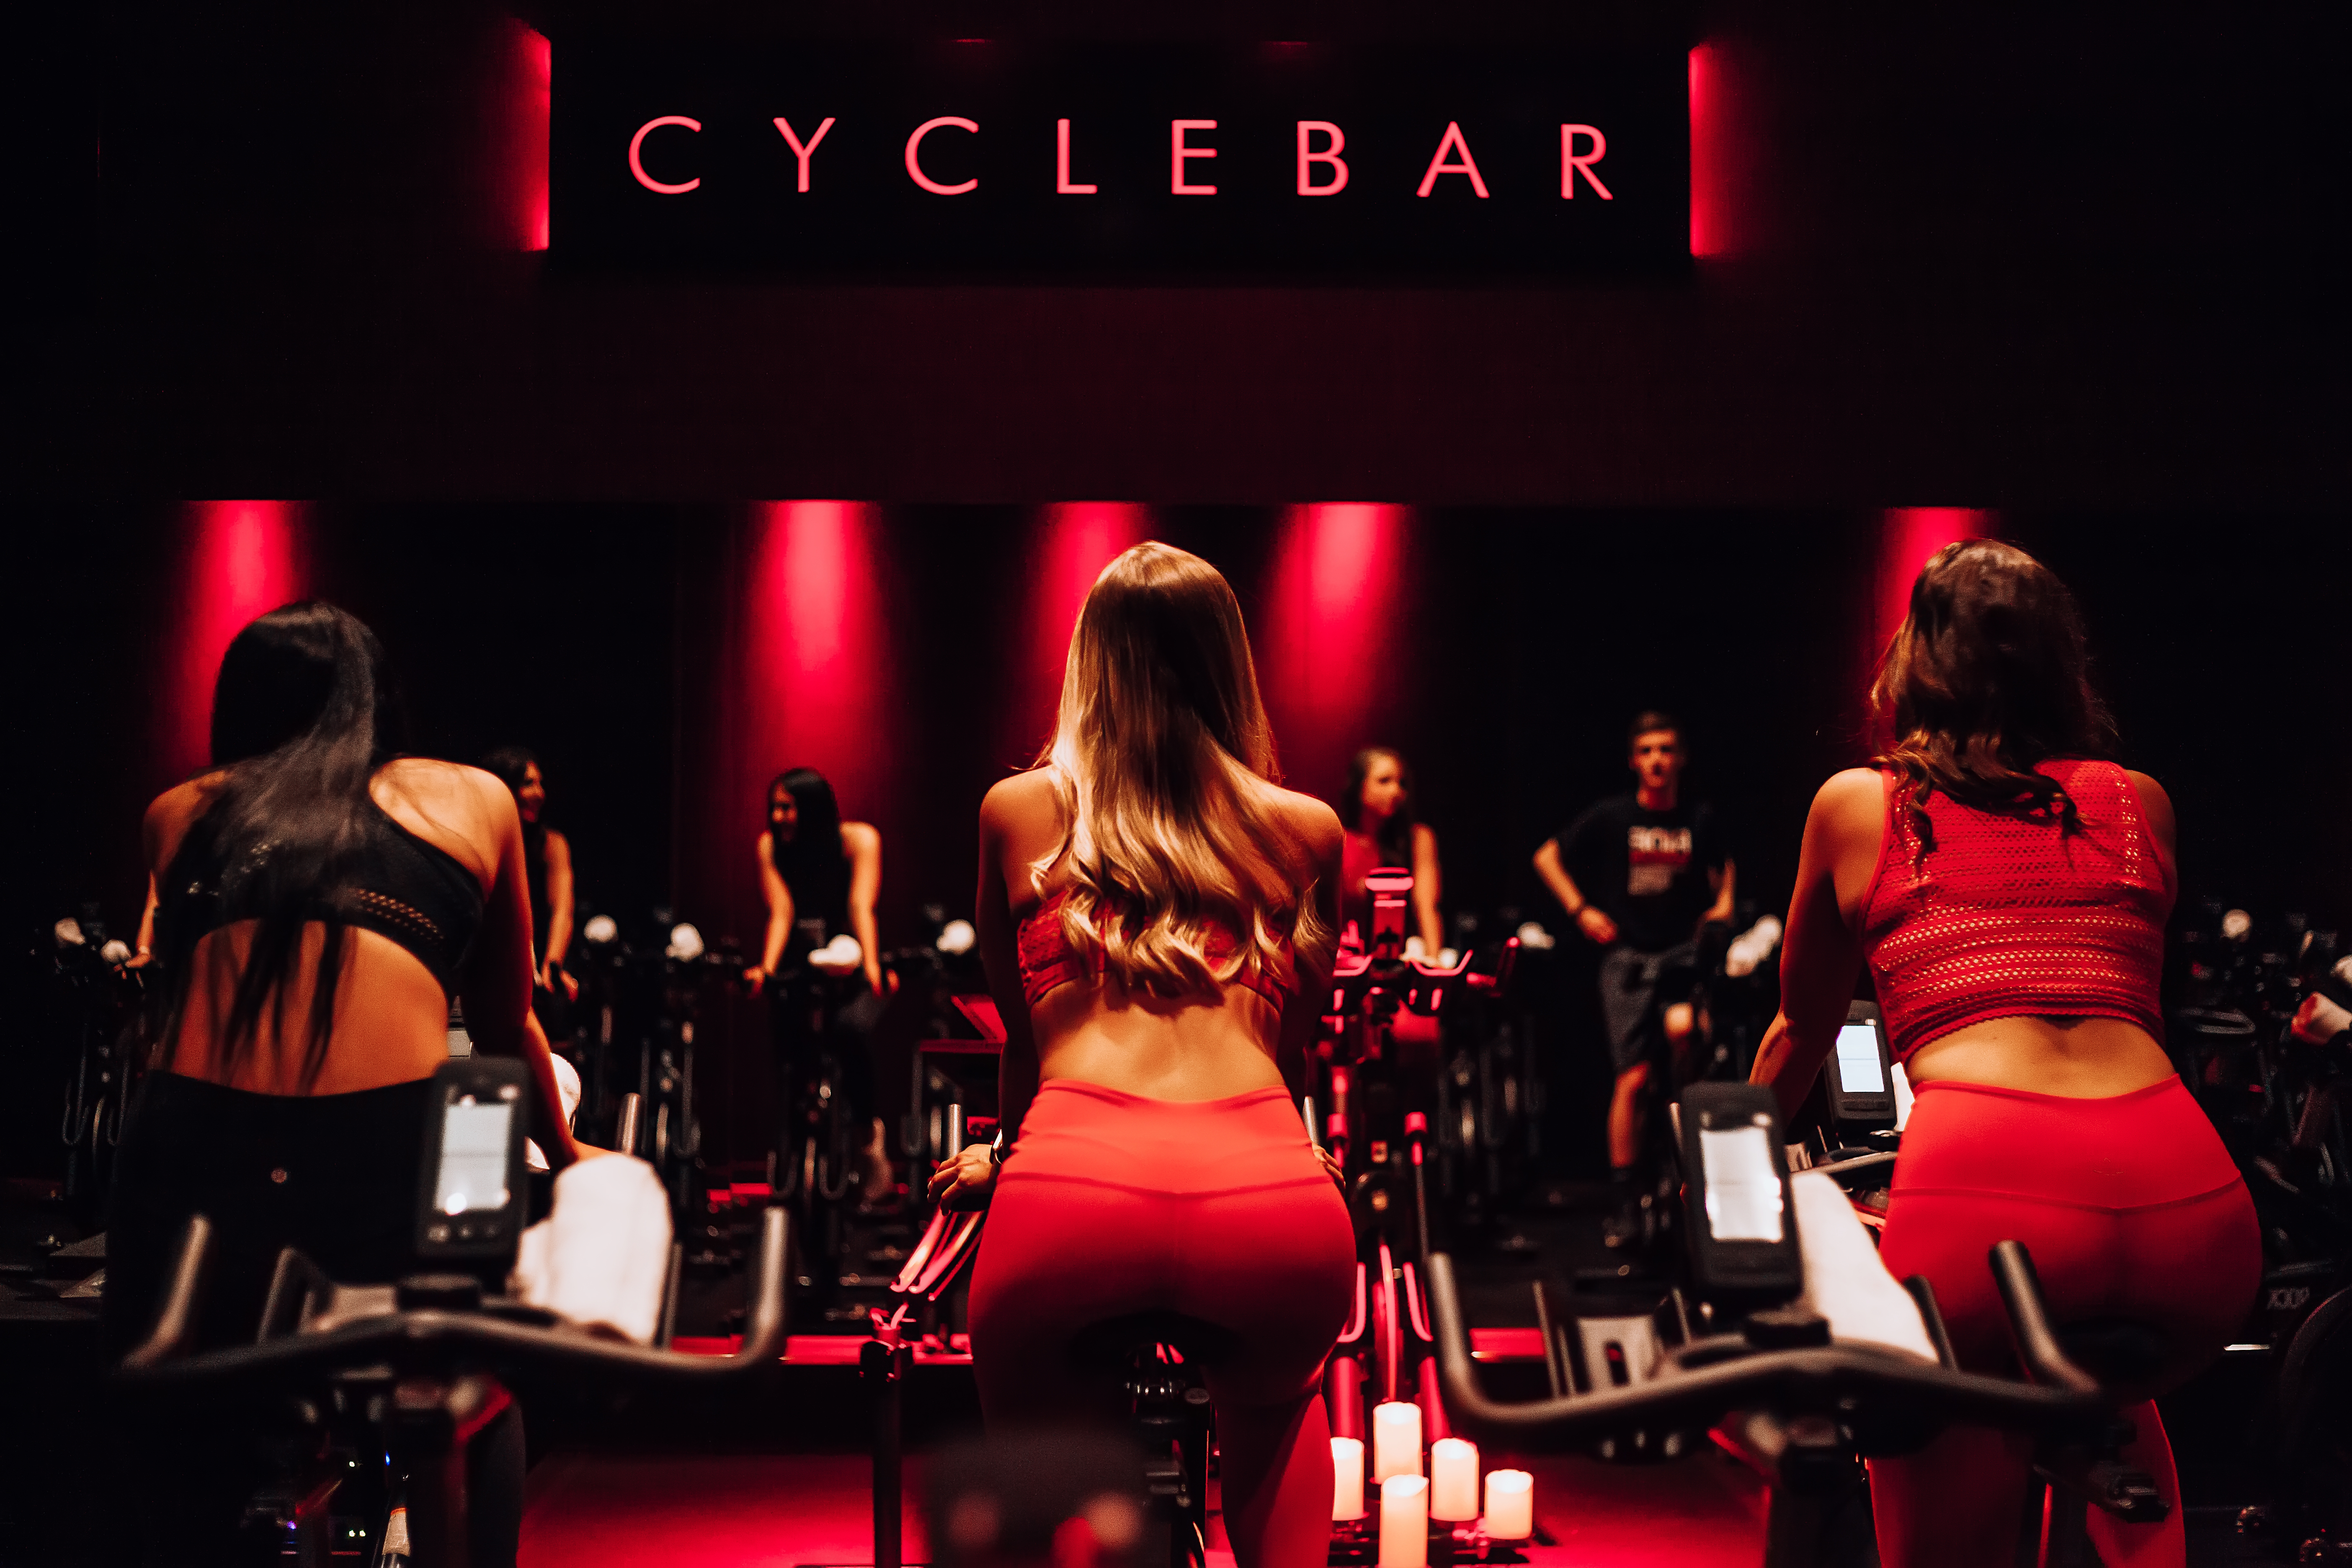 <span>A milestone for</span>CycleBar<span>and our sister brands at</span>Xponential Fitness<span>,</span>Club Pilates<span>,</span>Pure Barre<span>,</span>AKT Franchise<span>, and</span>YogaSix<span>opening in Saudi Arabia!</span>